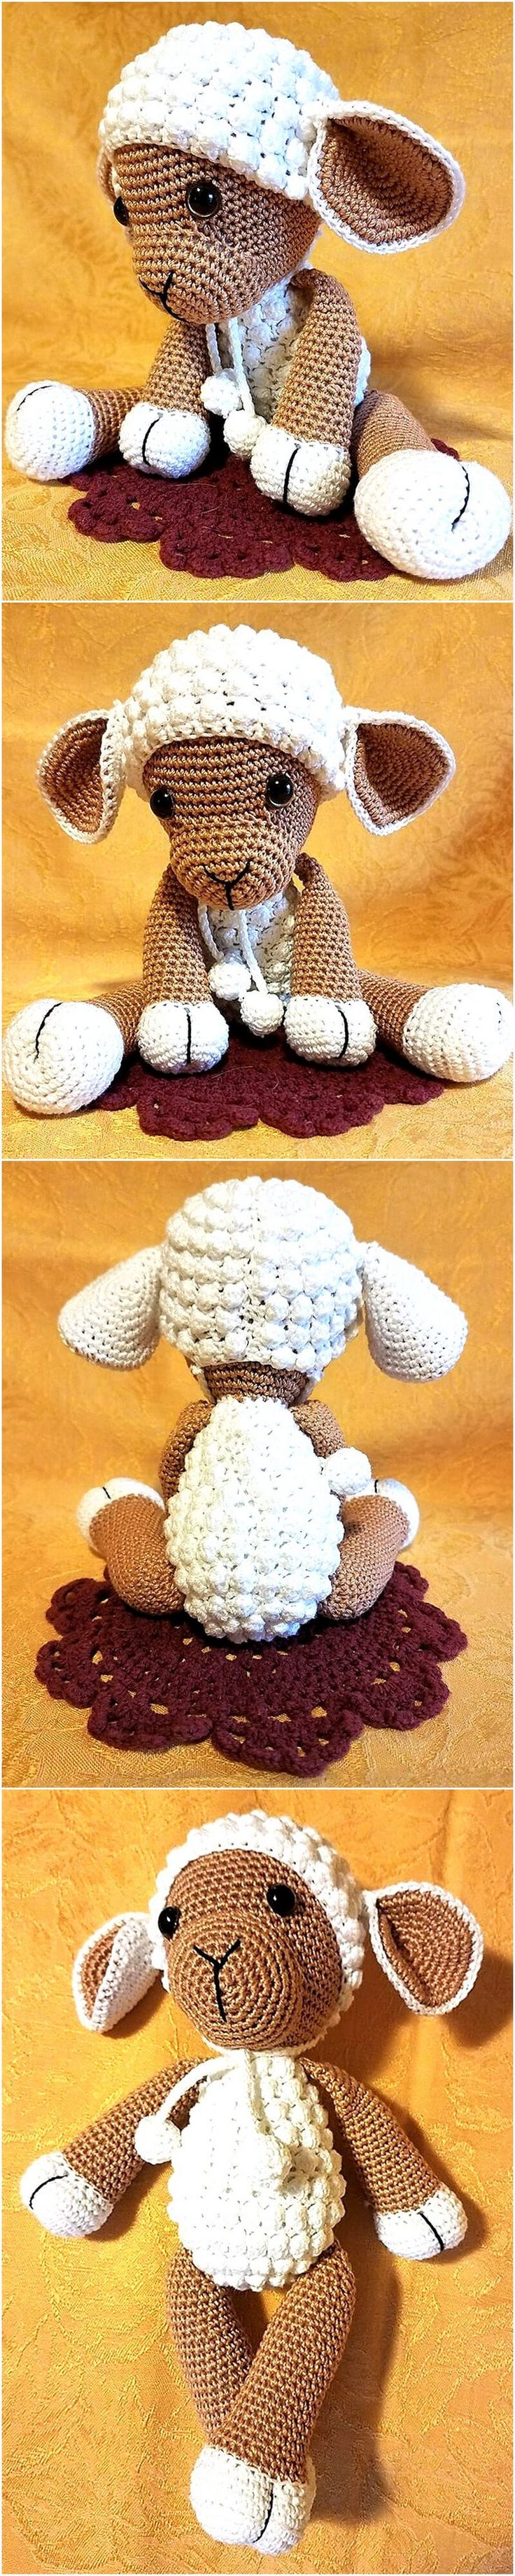 The babies love to hold soft toys in their hands while sleeping, so here is an idea for them. The color of the yarn can be selected bright and funky as well if the person who wants to make this for the baby doesn't like this color.